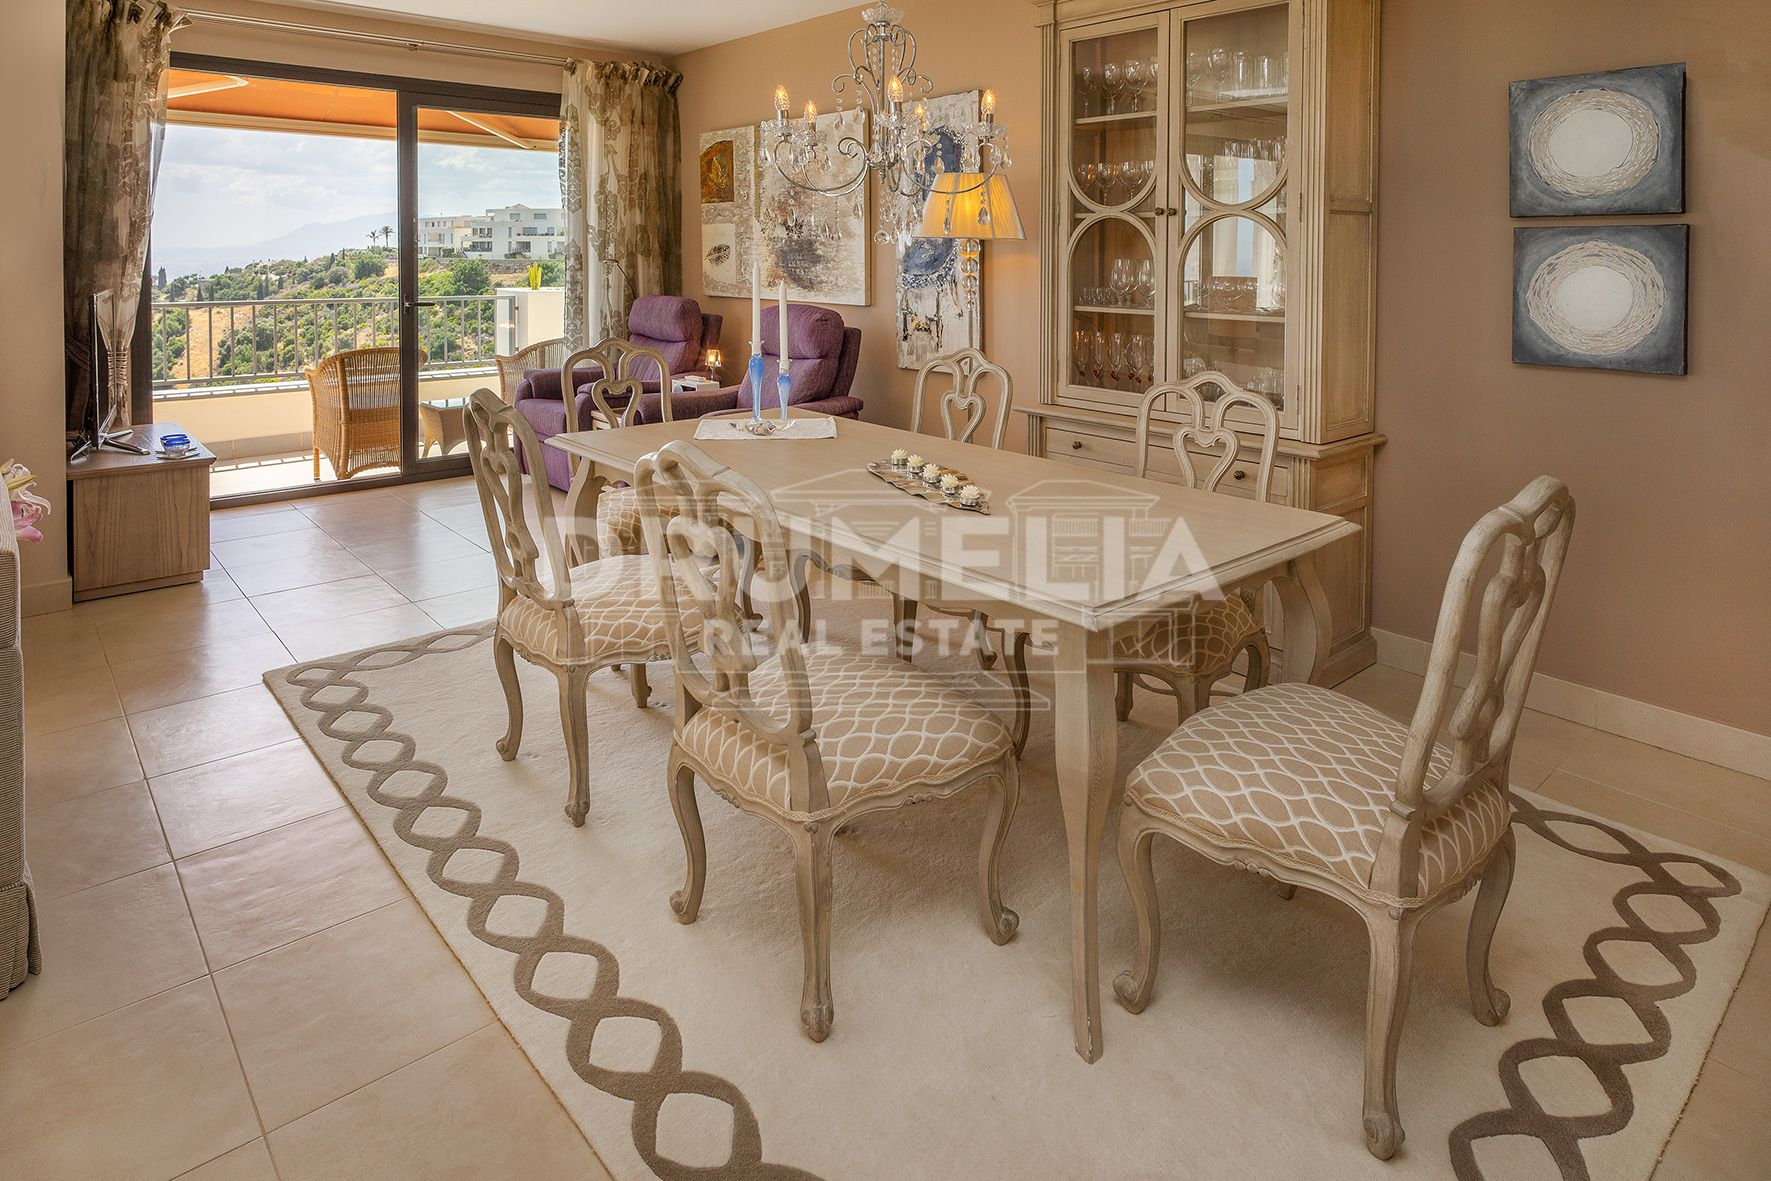 Marbella East, Duplex Penthouse with Stunning Views, Los Altos de los Monteros, Marbella East